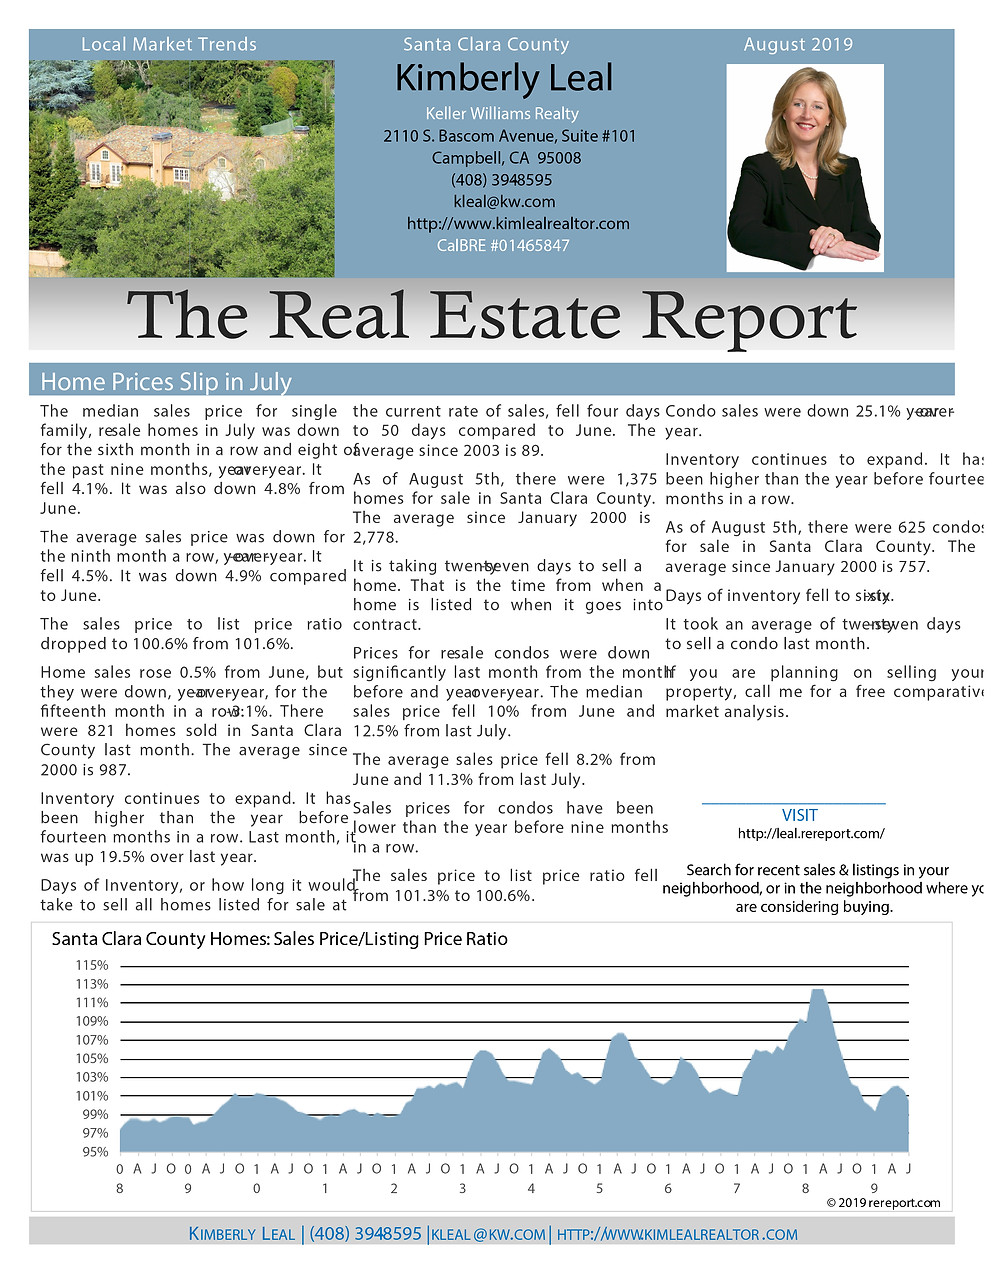 Click to view the full report.